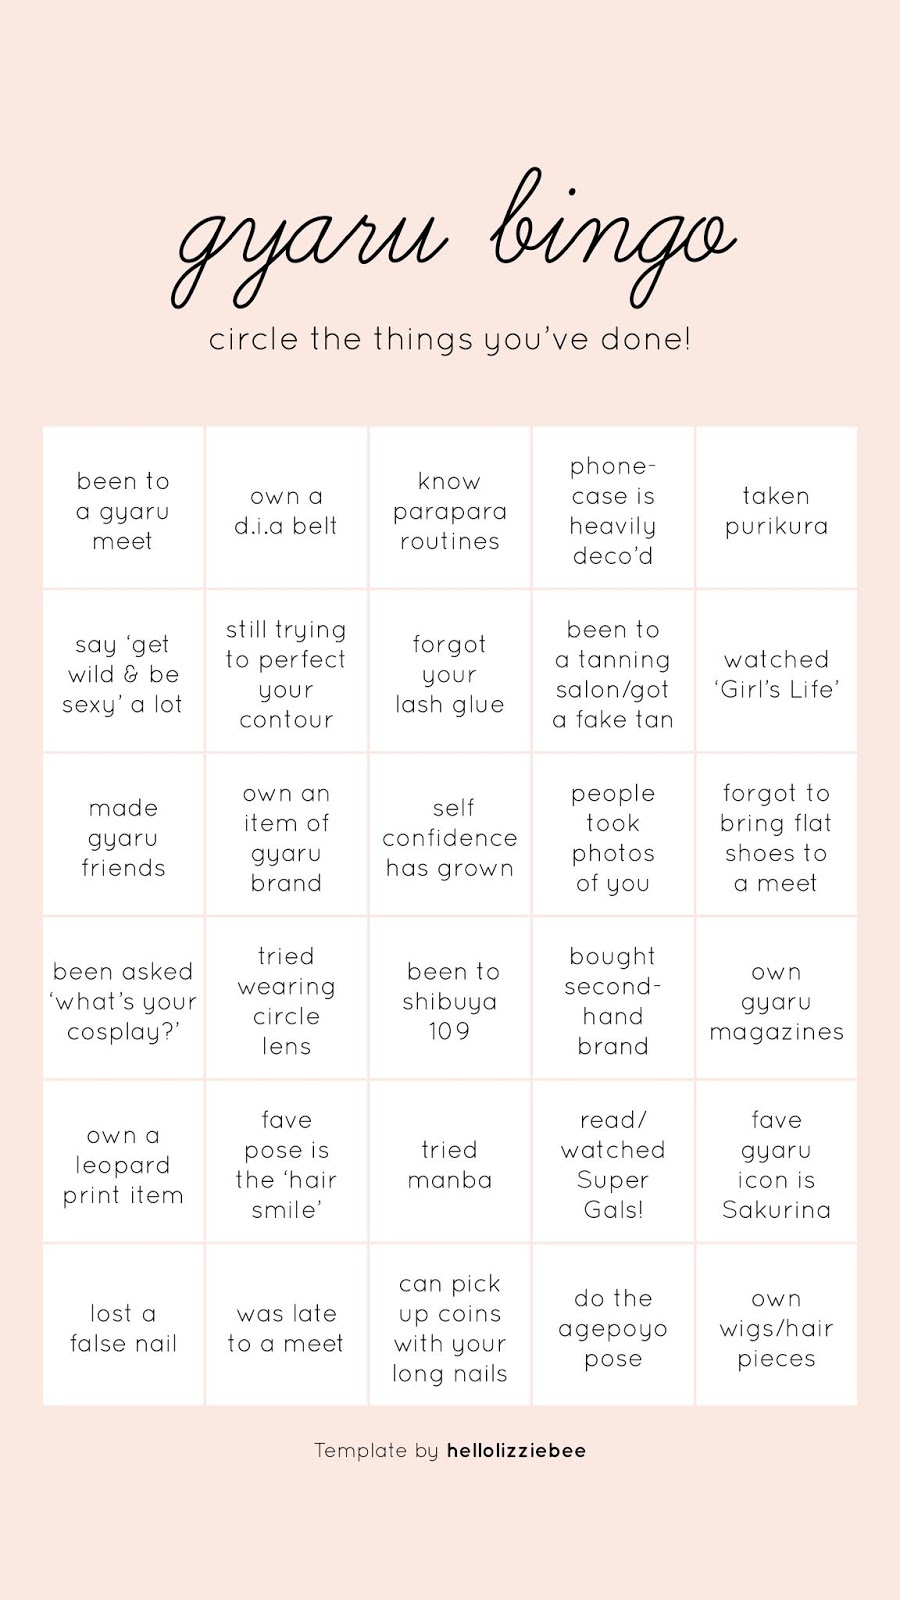 gyaru bingo - instagram stories template